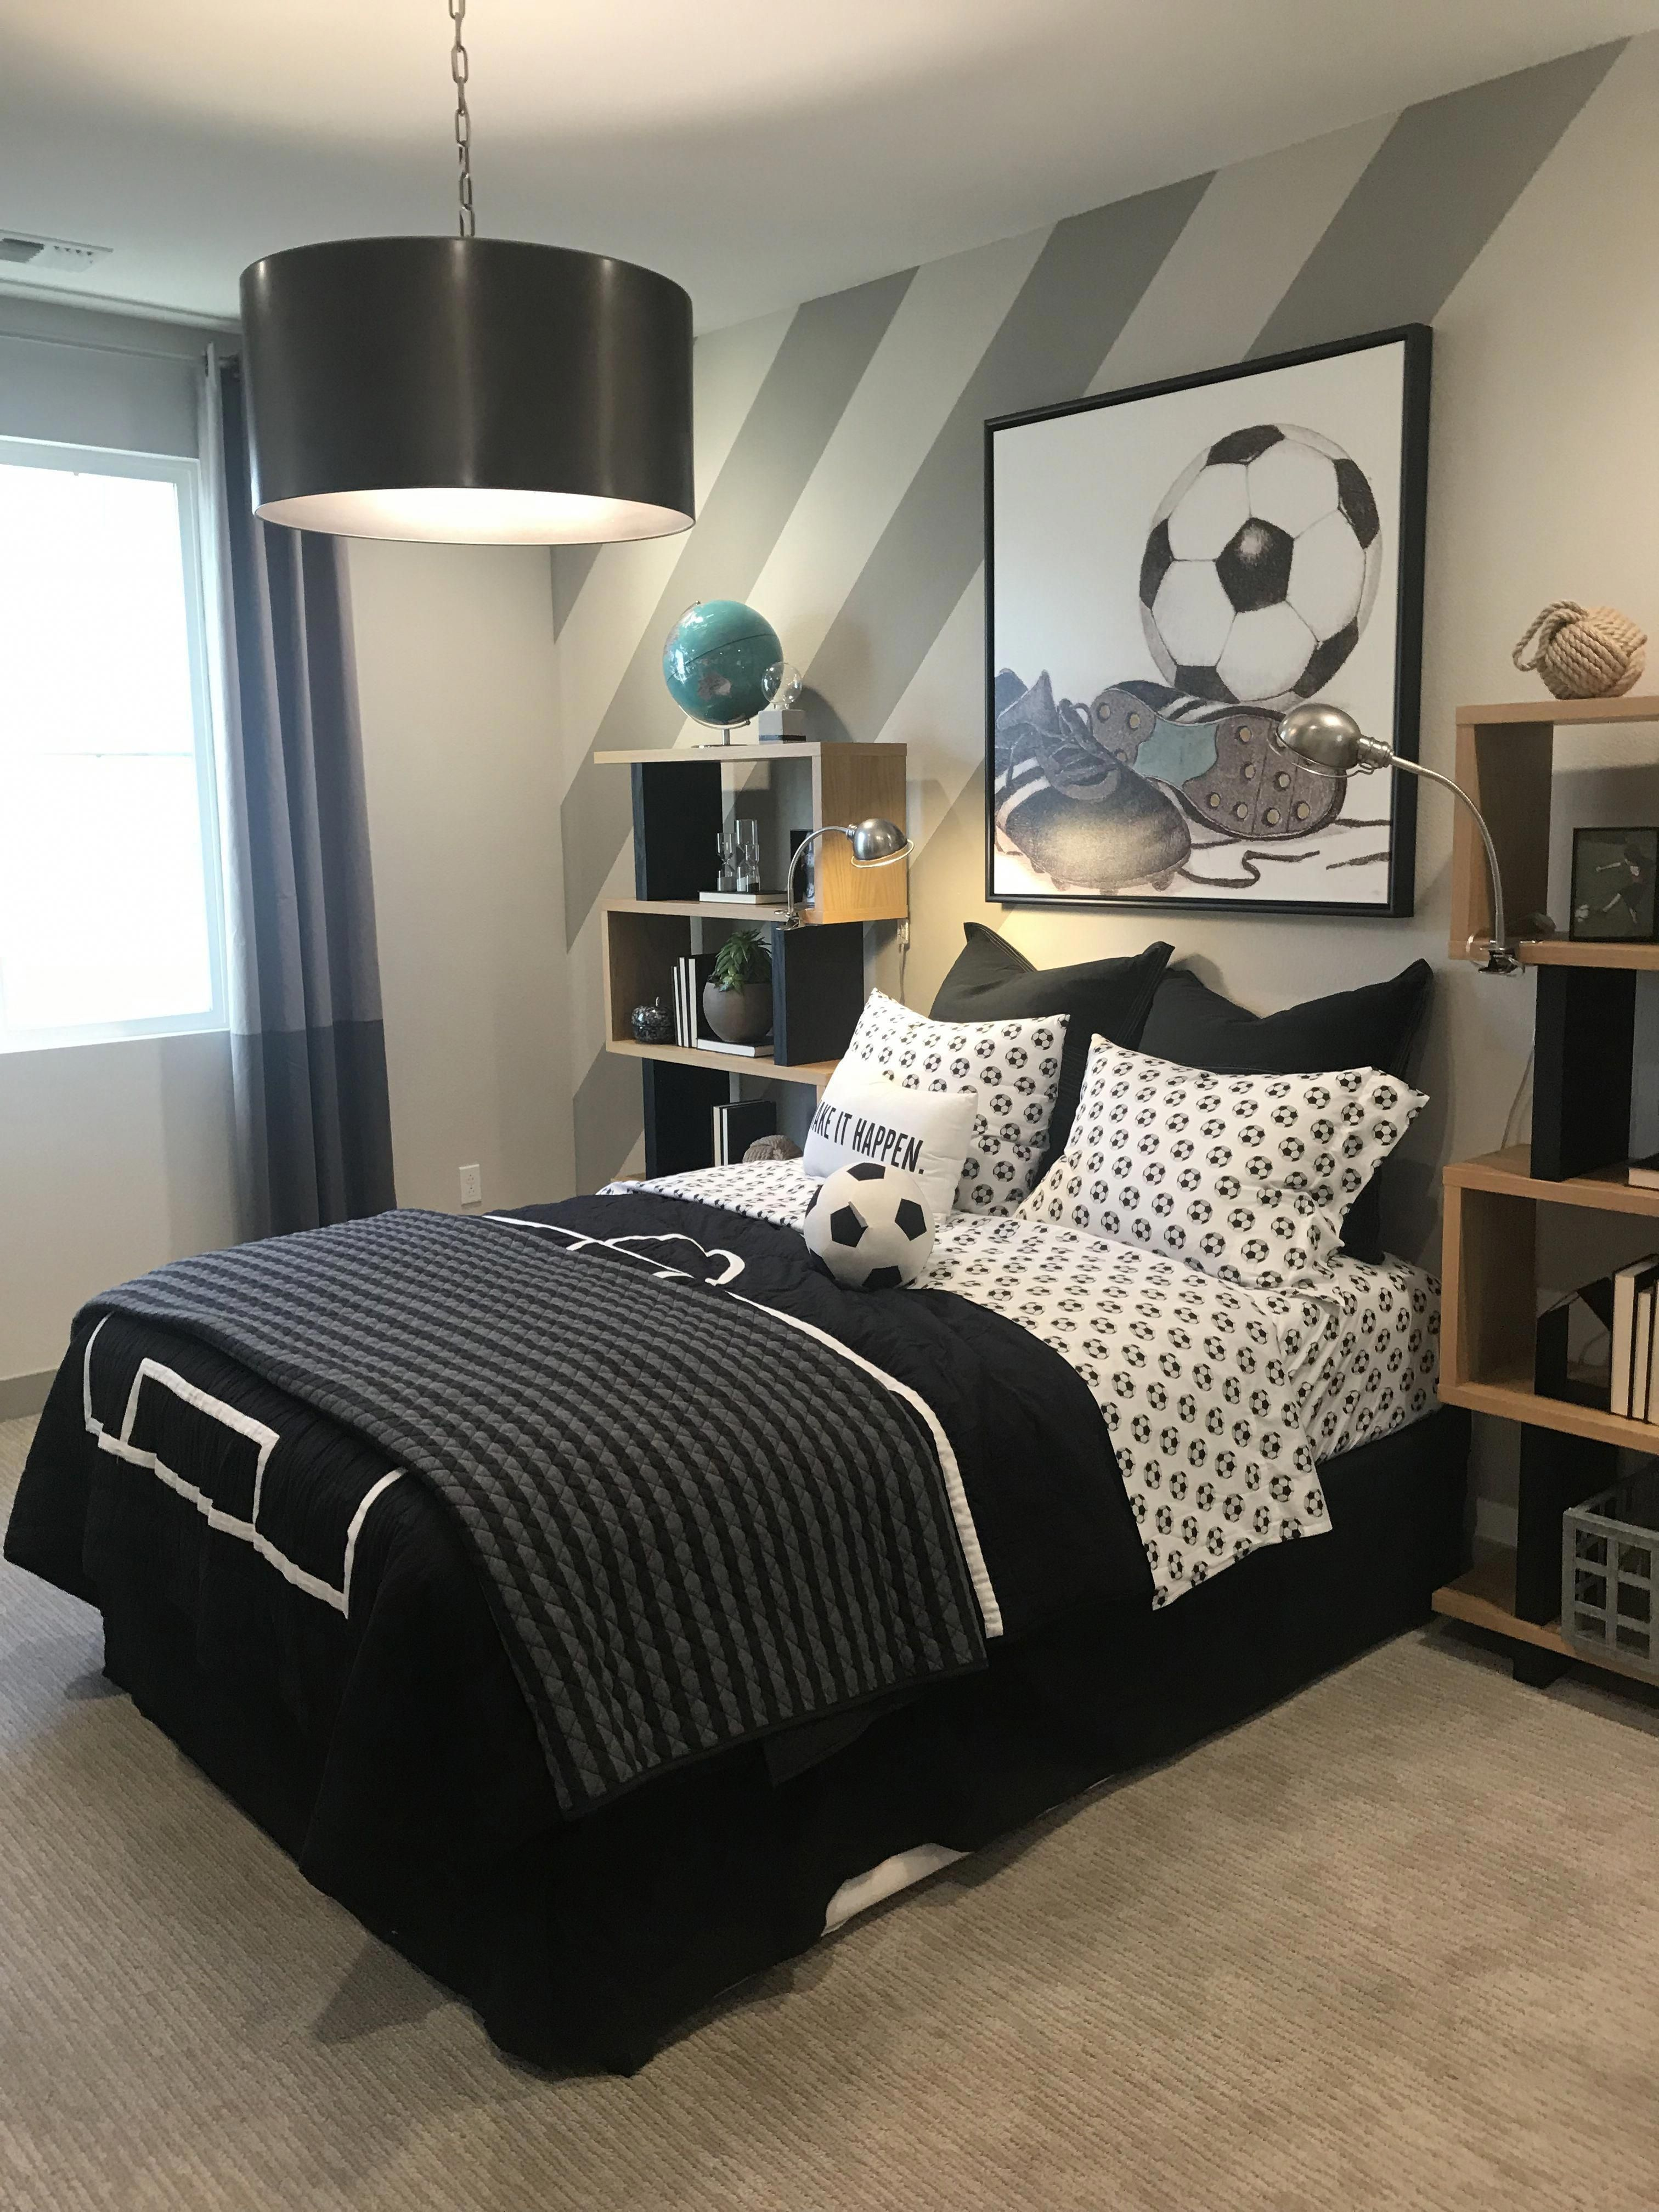 Elegant And Luxury Bed Room Design Ideas 30 Bedroomdesign In 2020 Boy Bedroom Design Boys Bedroom Decor Small Bedroom Decor